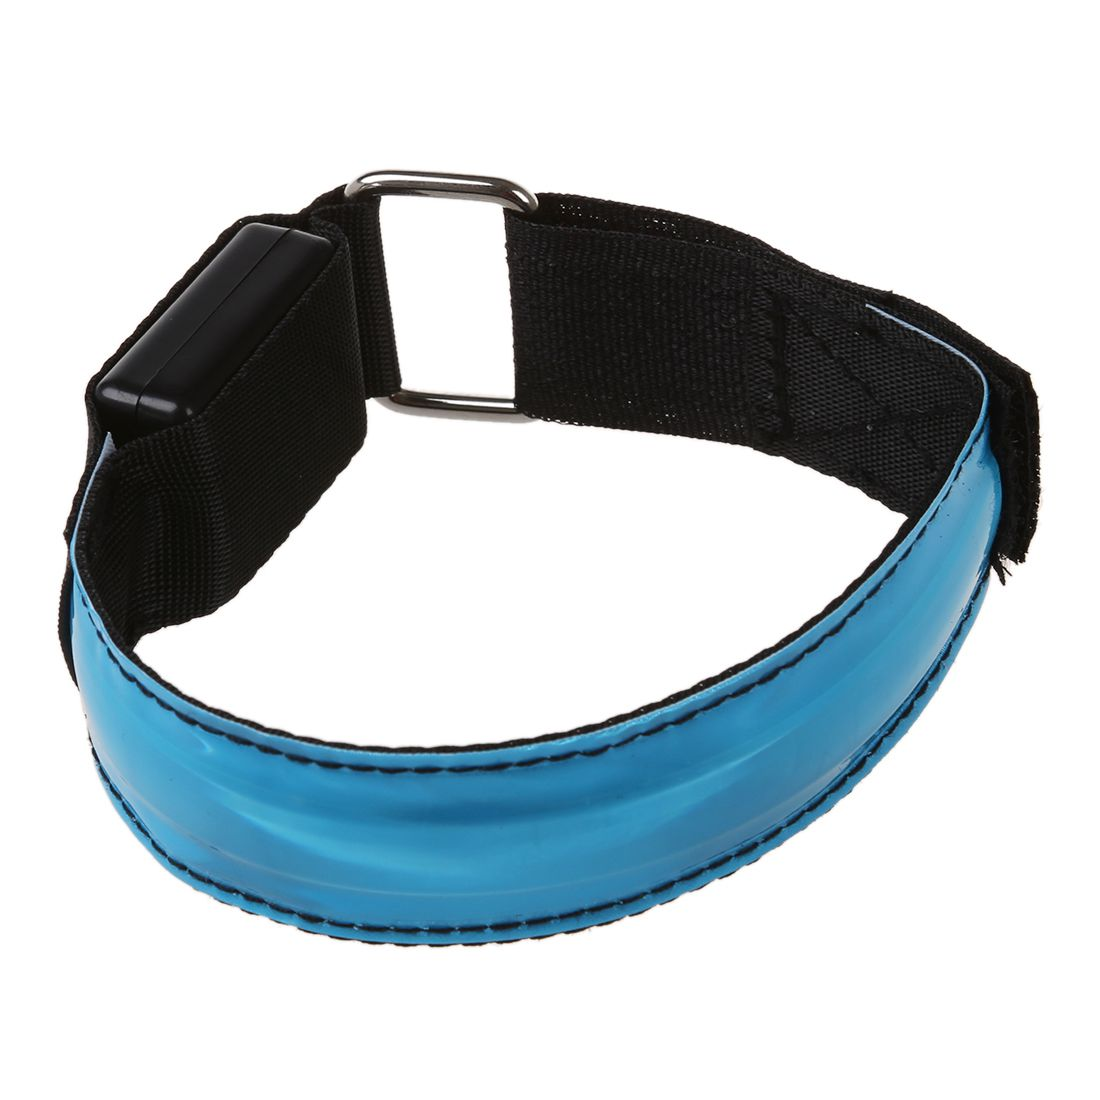 Blue Clear And Distinctive battery Not Included Led Safety Reflective Belt Strap Snap Wrap Arm Band Armband Running Bracelet